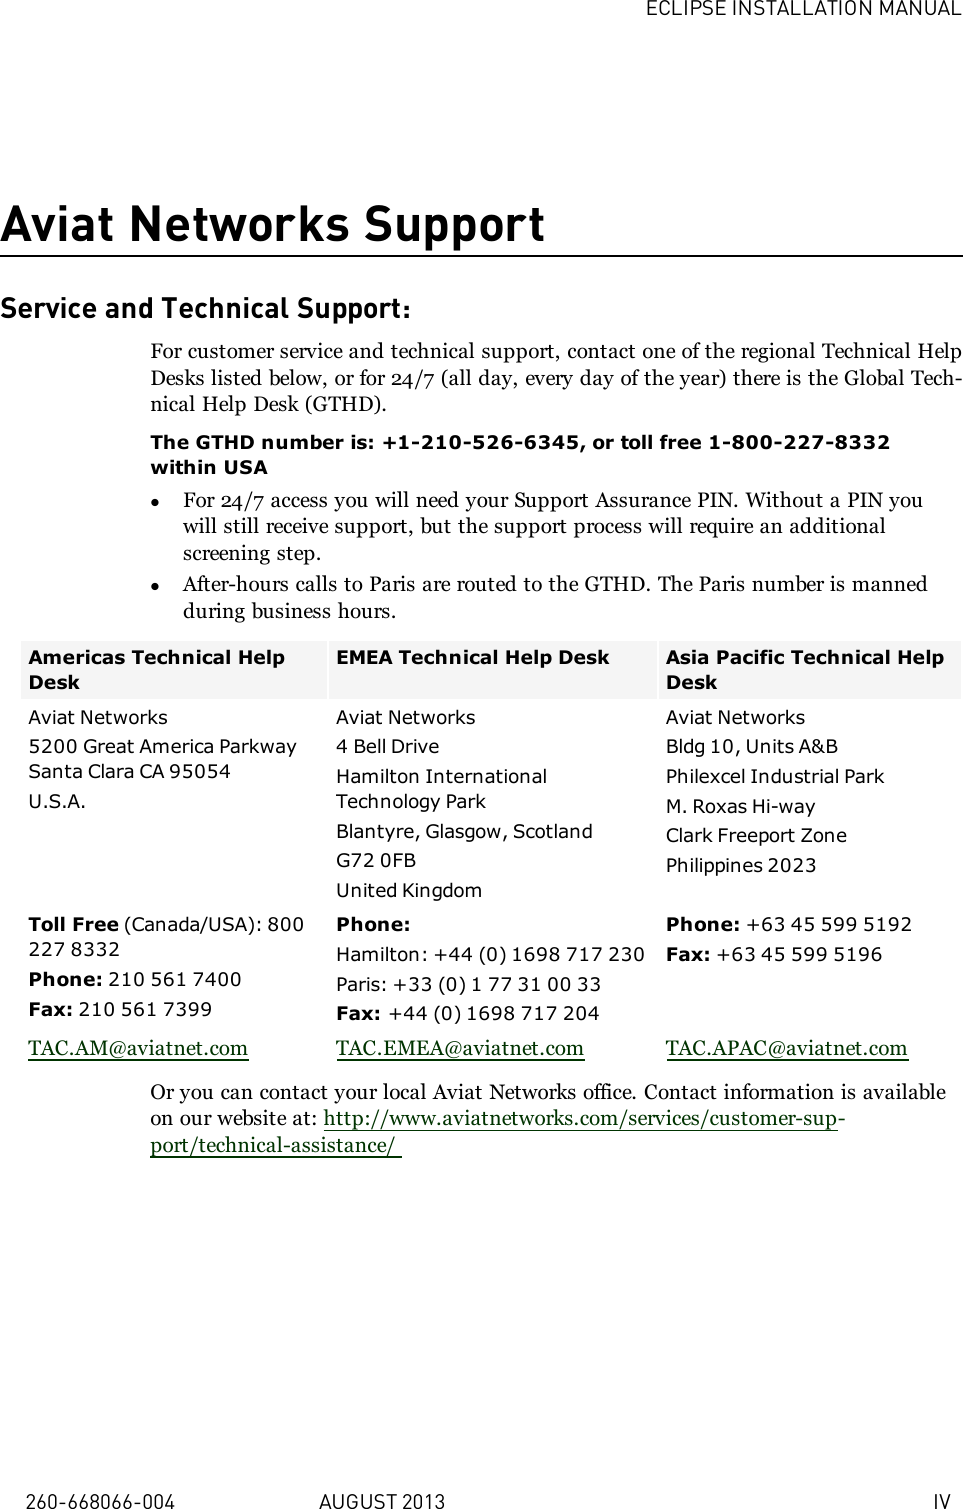 Bell call answer service user guide